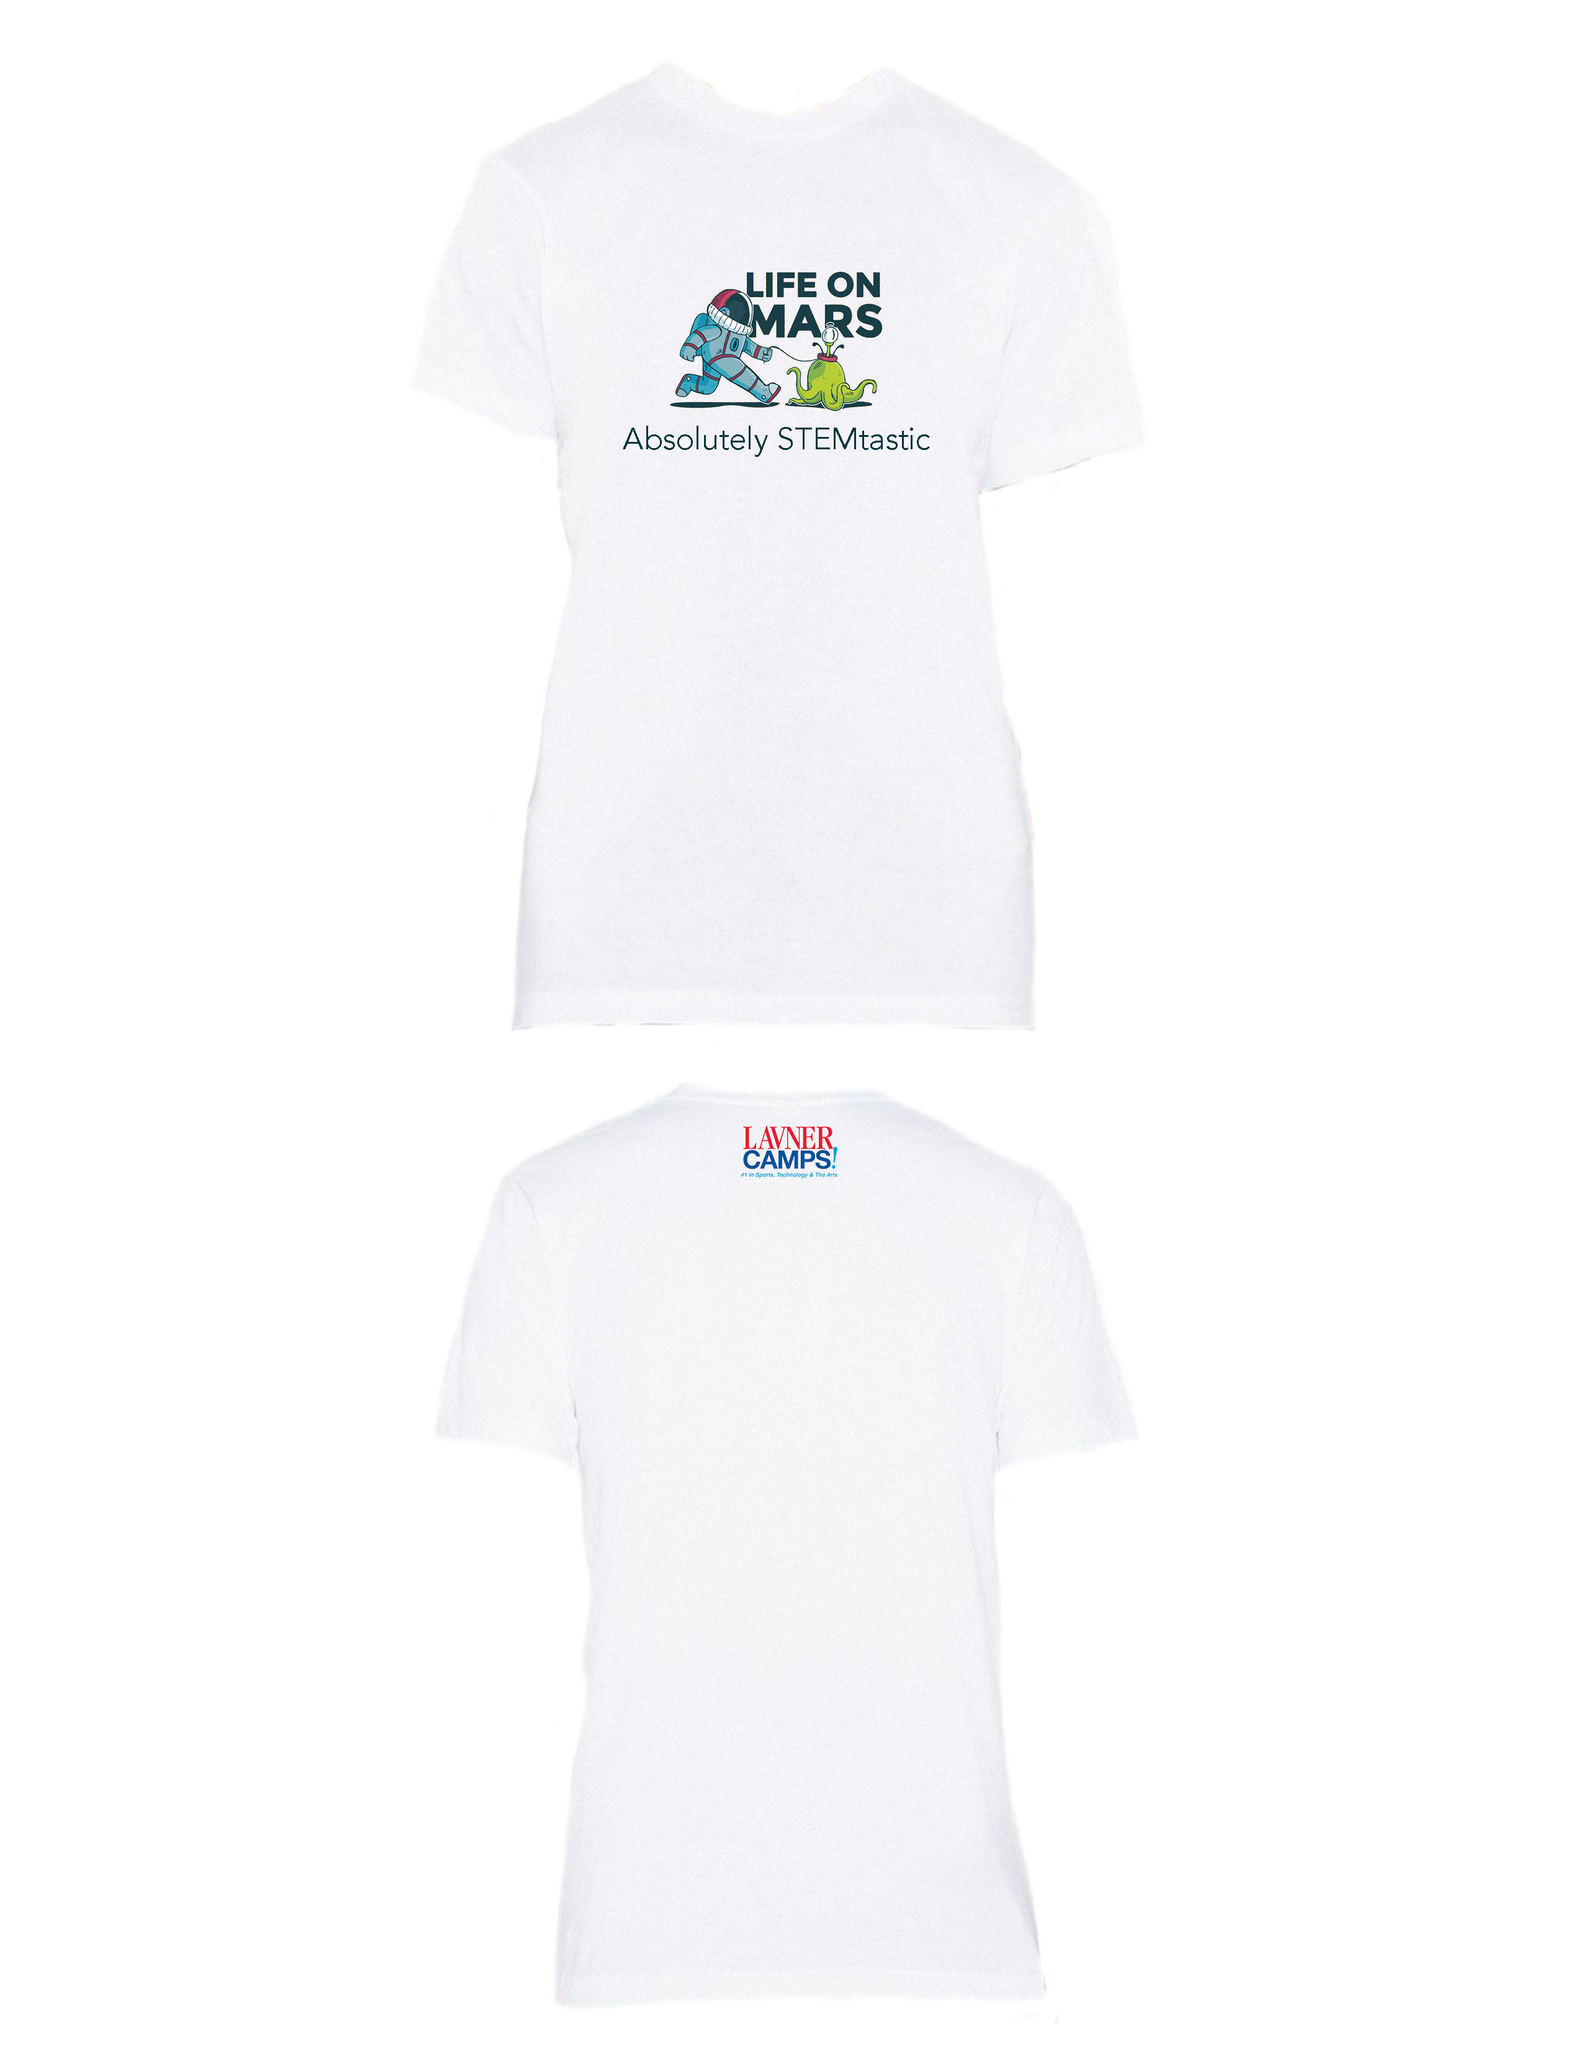 Life On Mars T-Shirt (Youth)